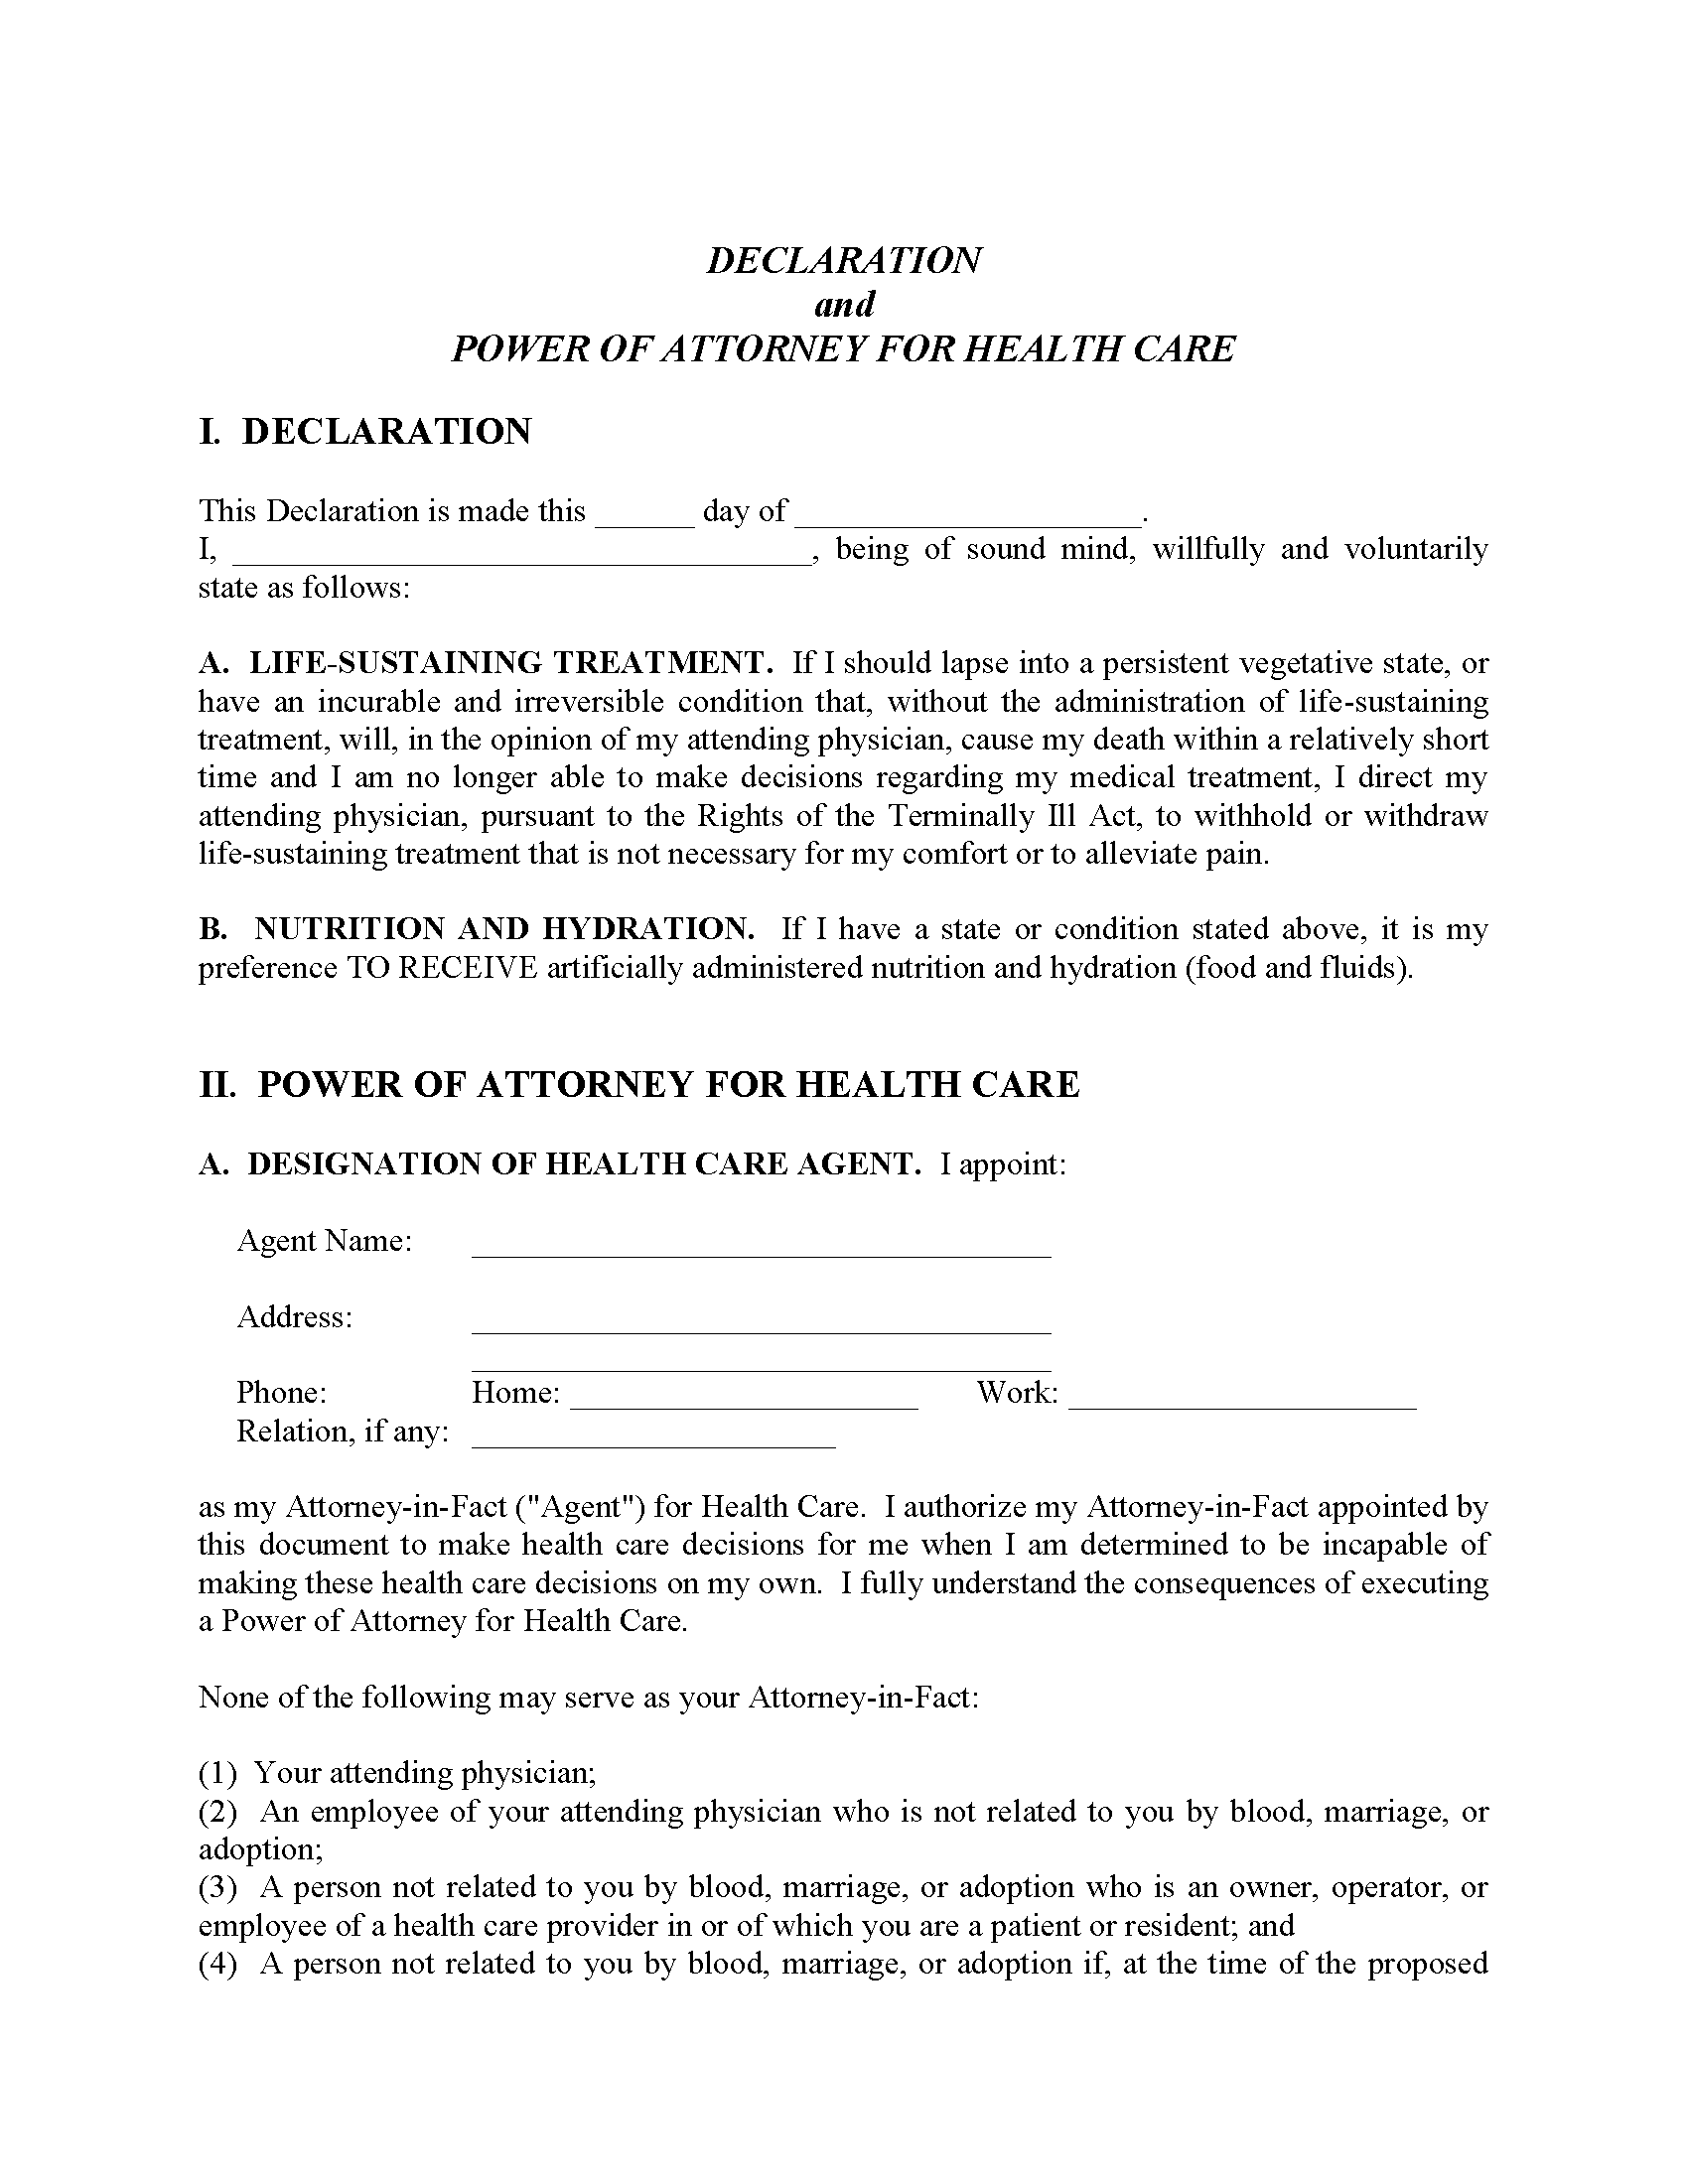 California Living Will Form Free Printable Legal Forms